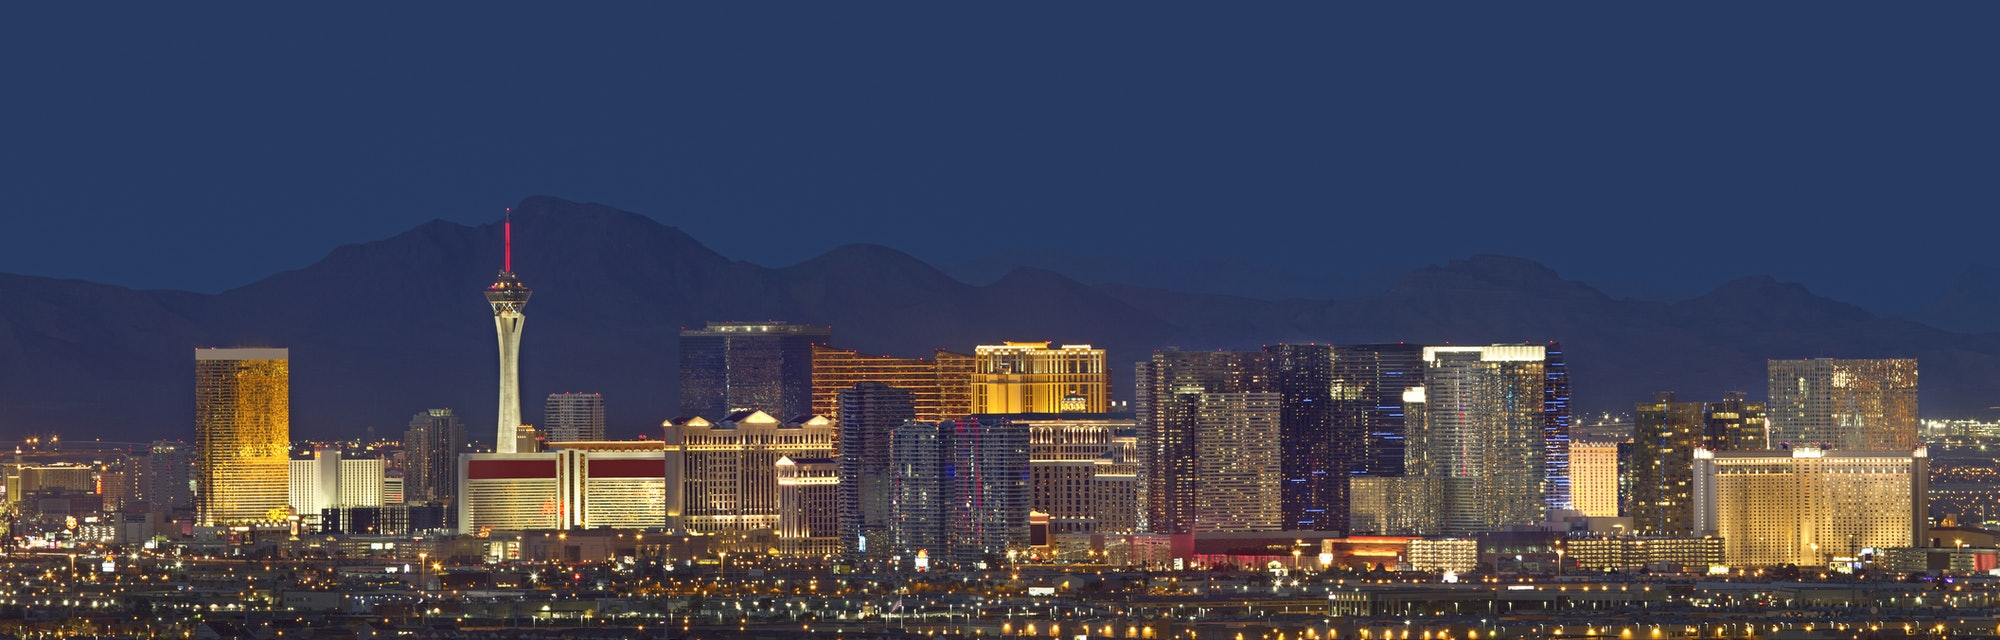 Horizontal photo of Las Vegas with mountain backdrop at night.